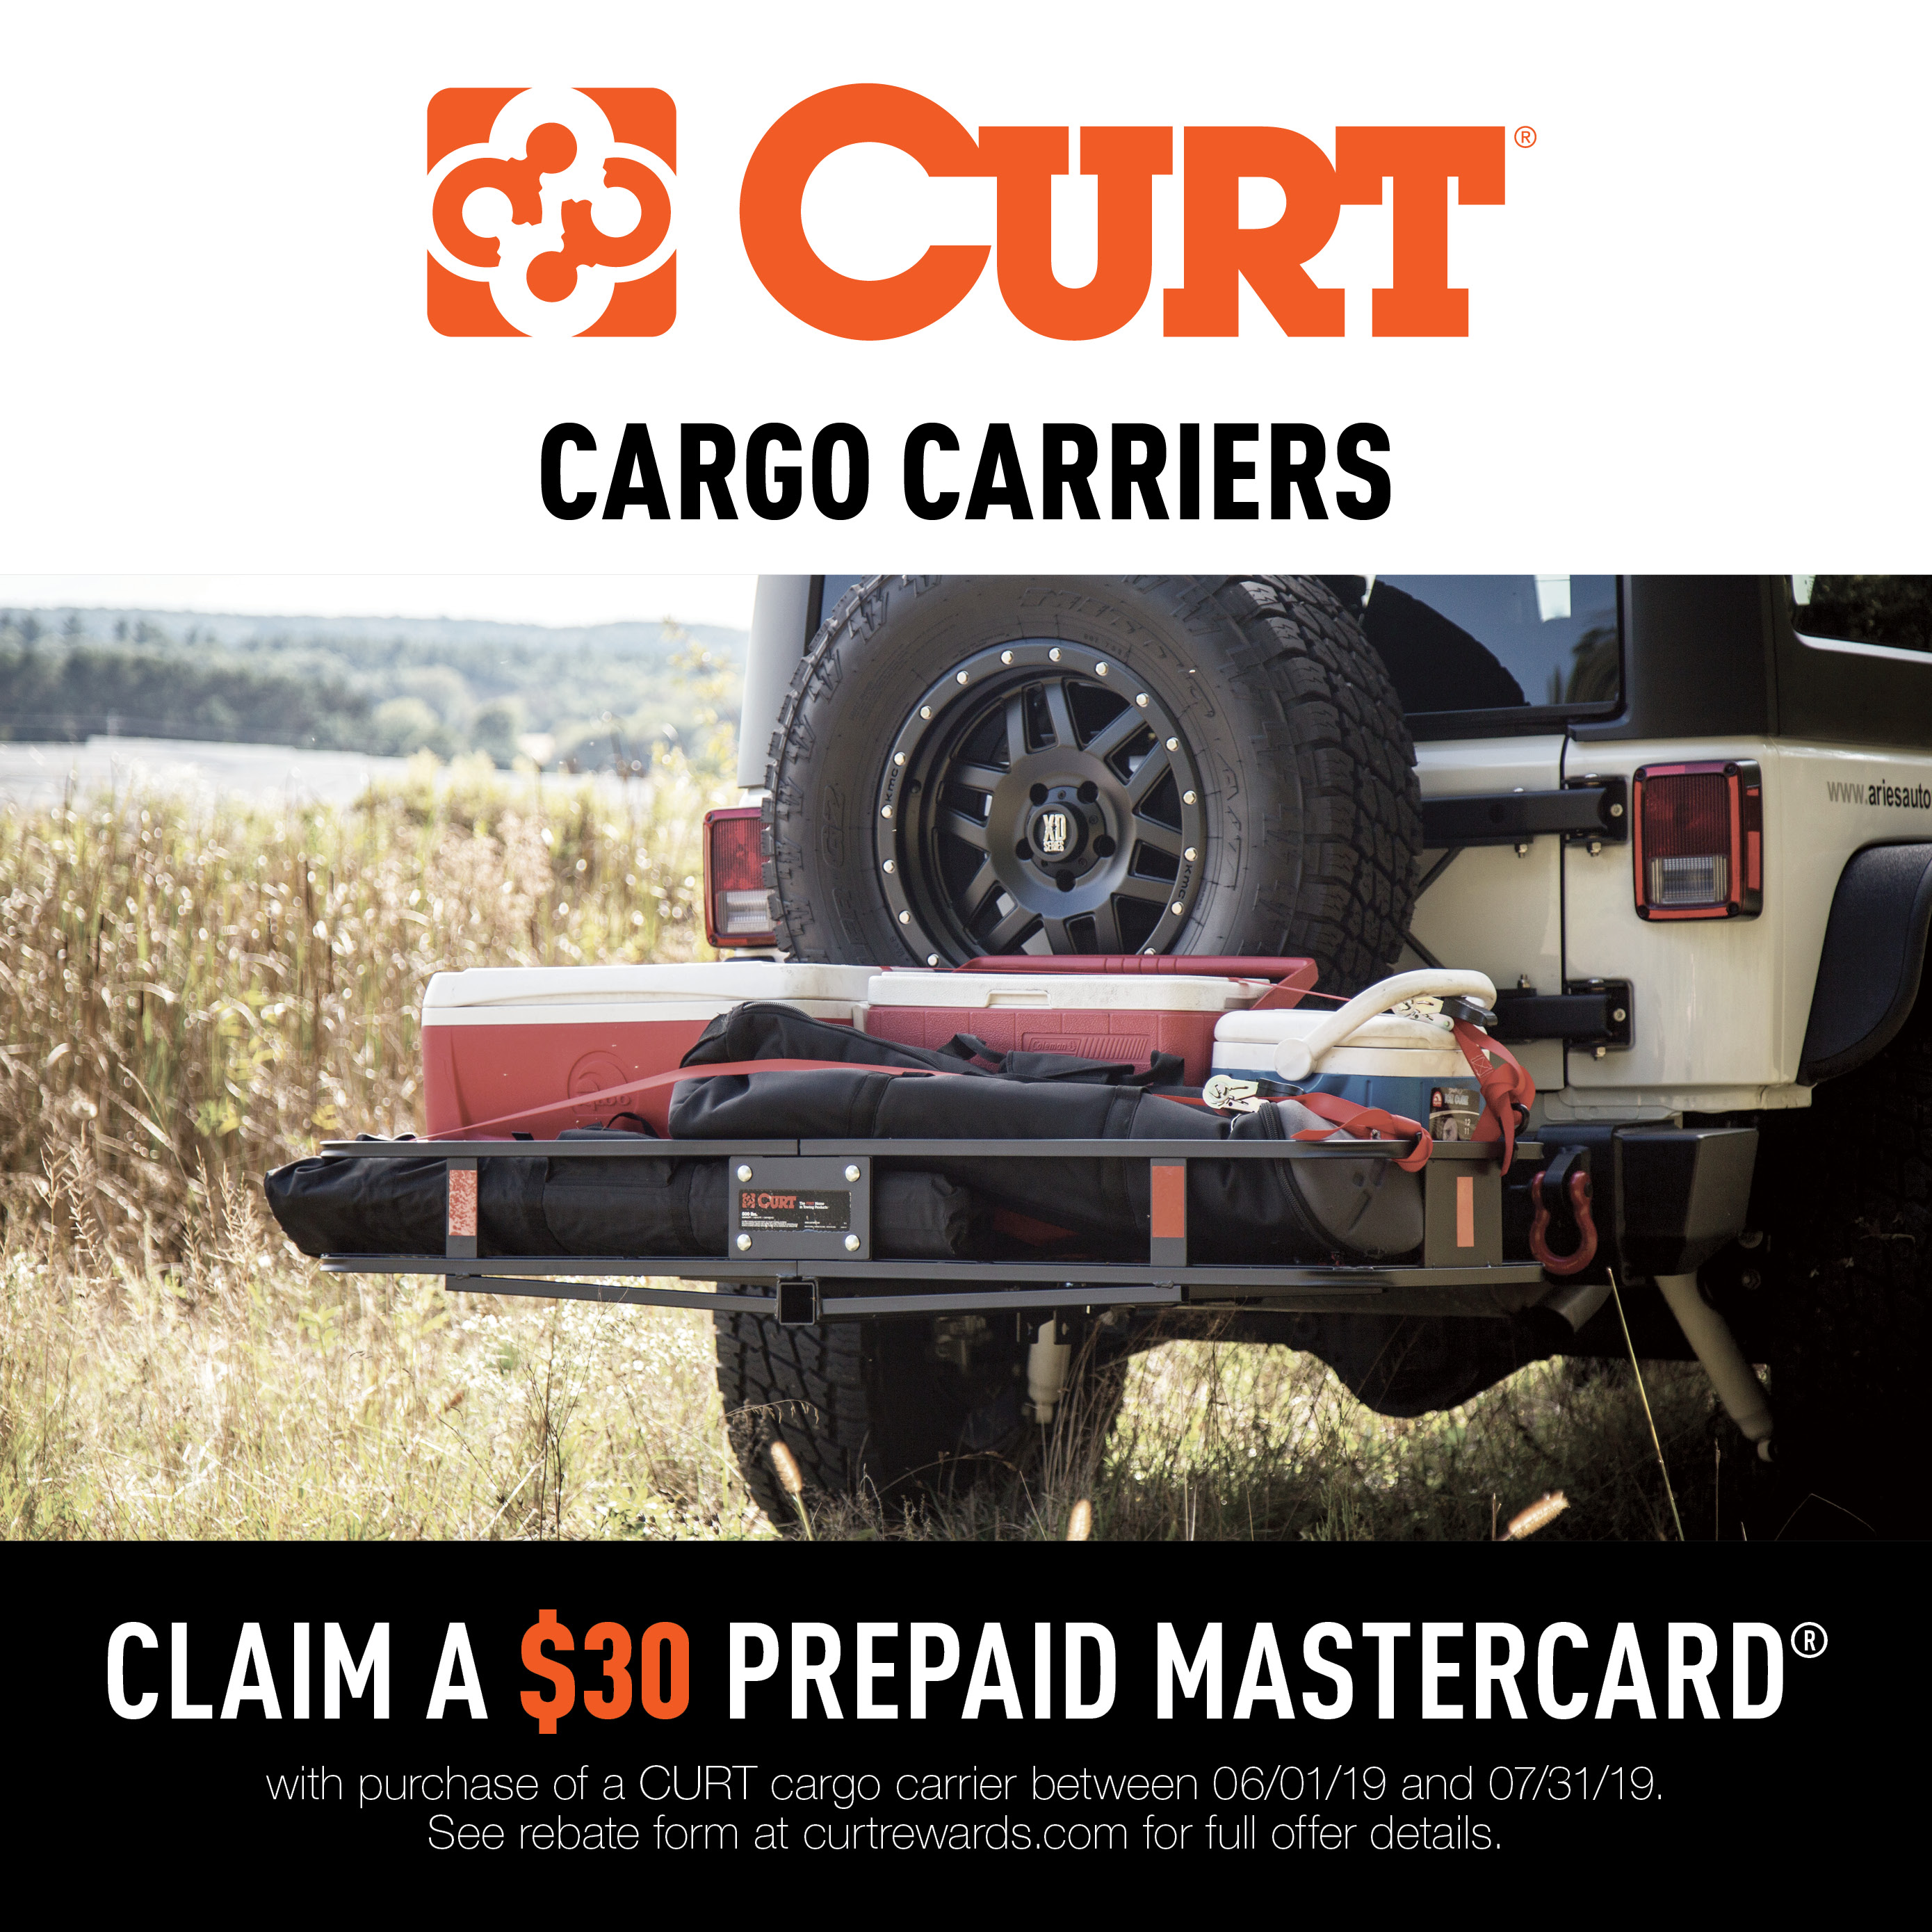 CURT Cargo Carriers Promotion 2019